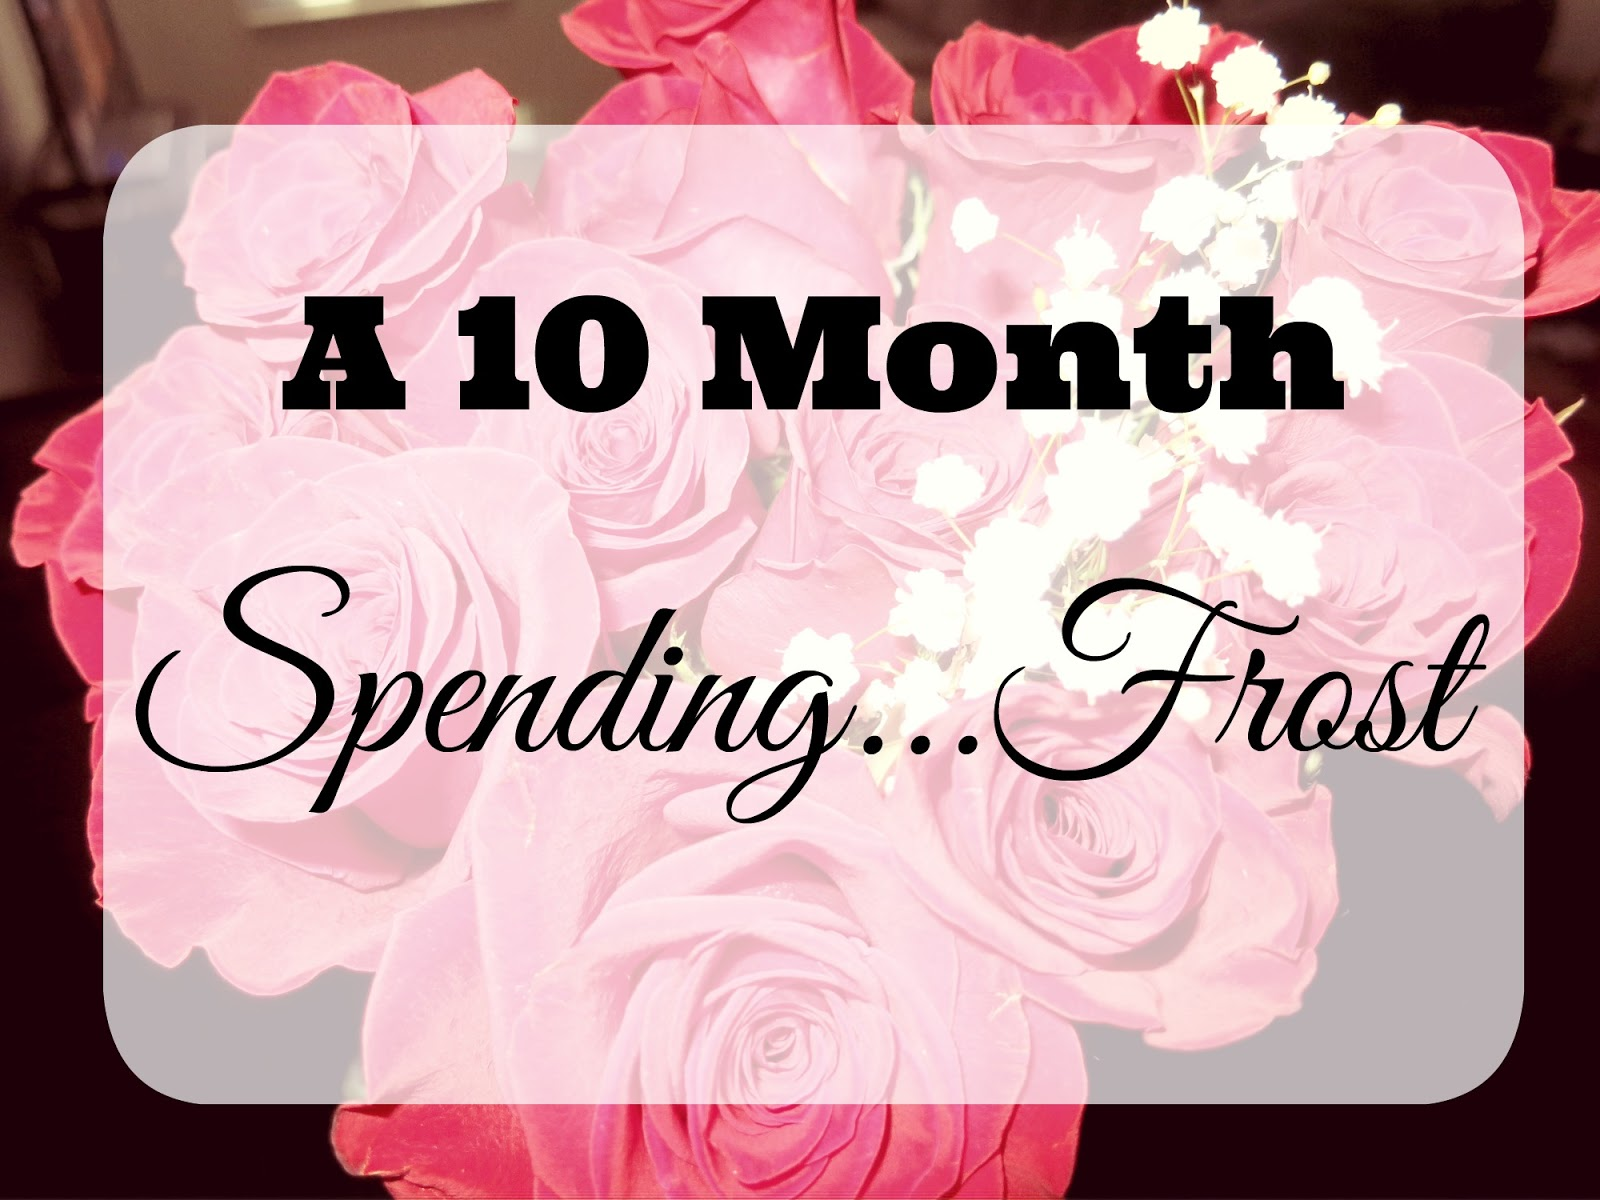 http://www.notentirelyperfect.com/2015/01/december-spending-recap.html